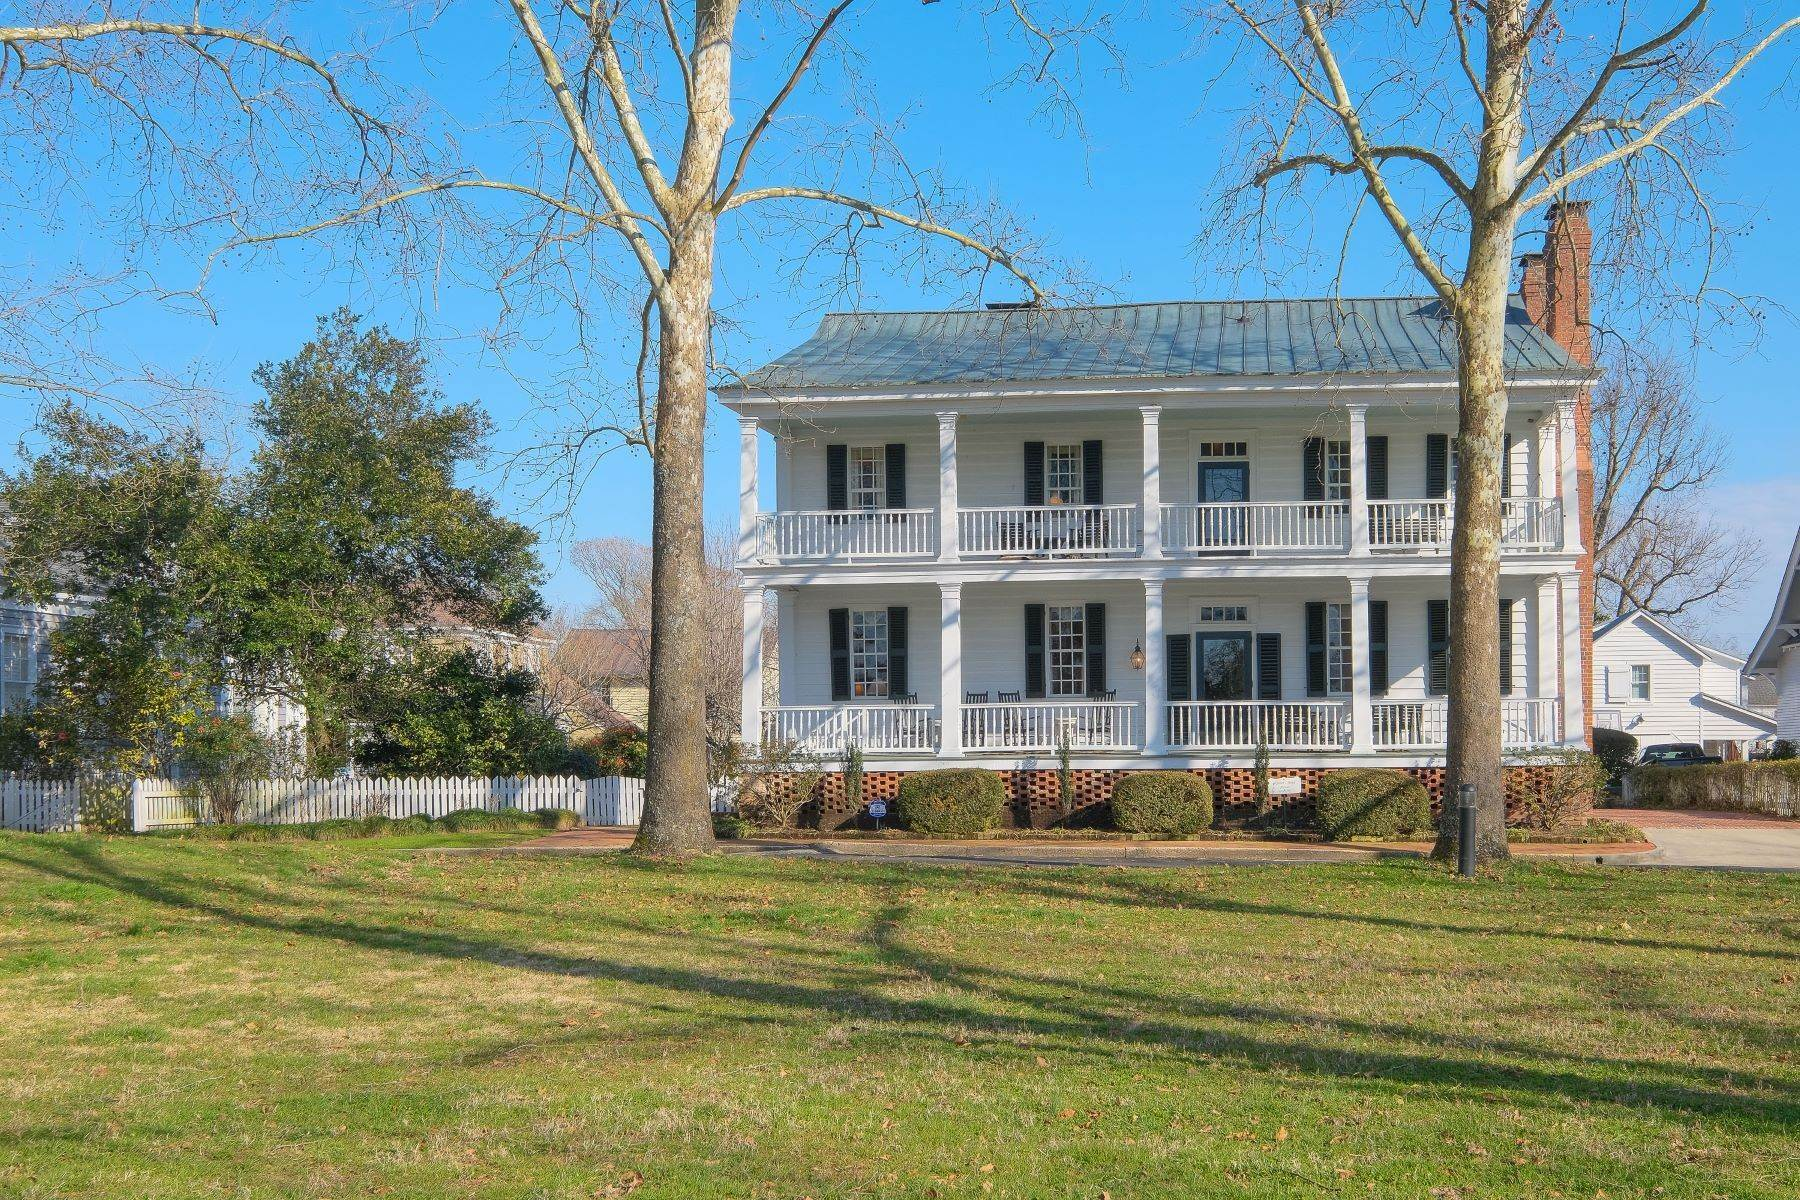 Single Family Homes for Sale at HISTORIC GEM 405 Court St Edenton, North Carolina 27932 United States